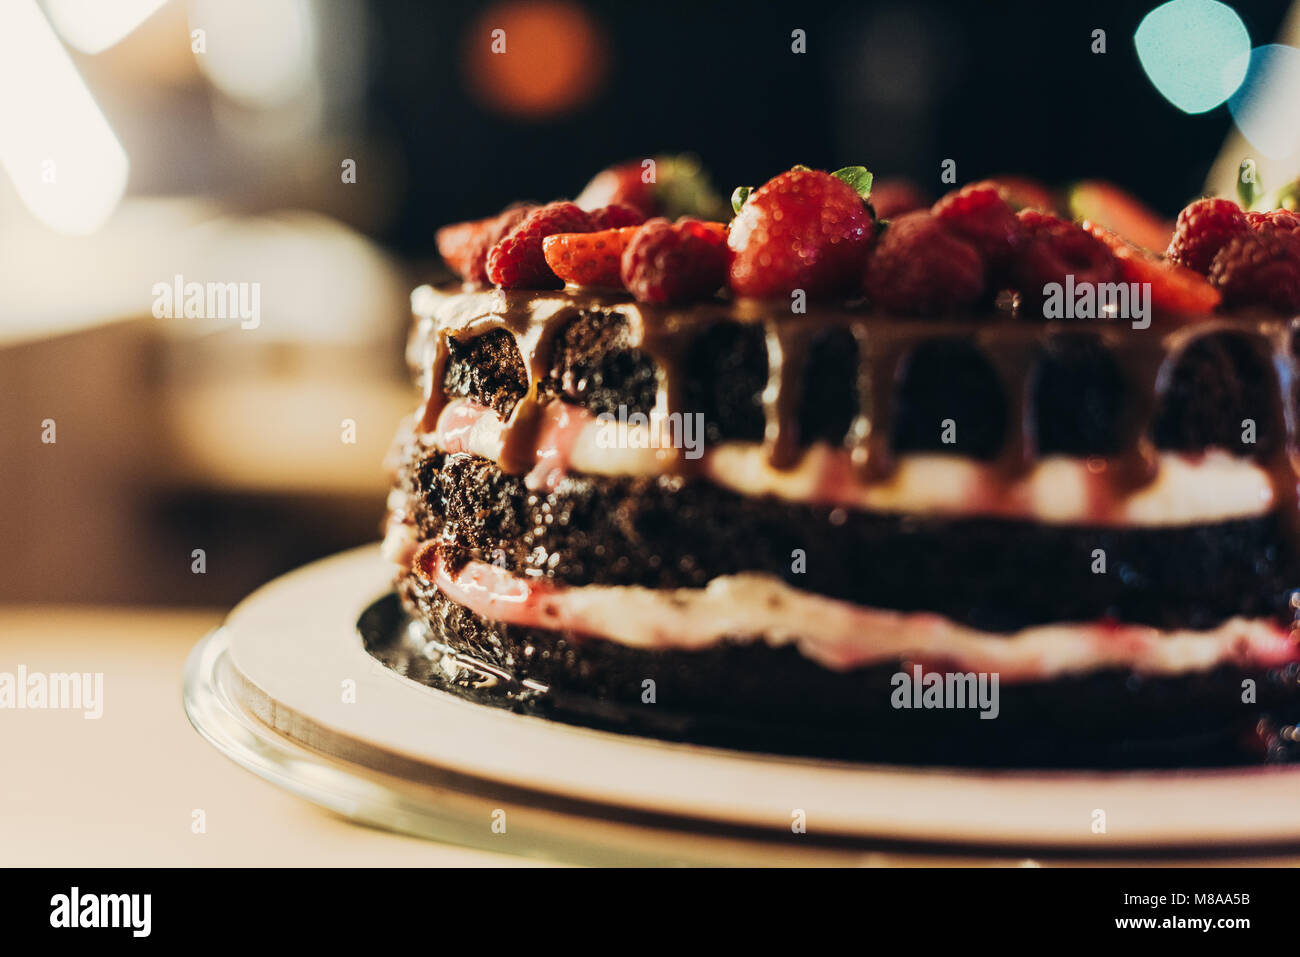 chocolate cake with cream and fruits - Stock Image